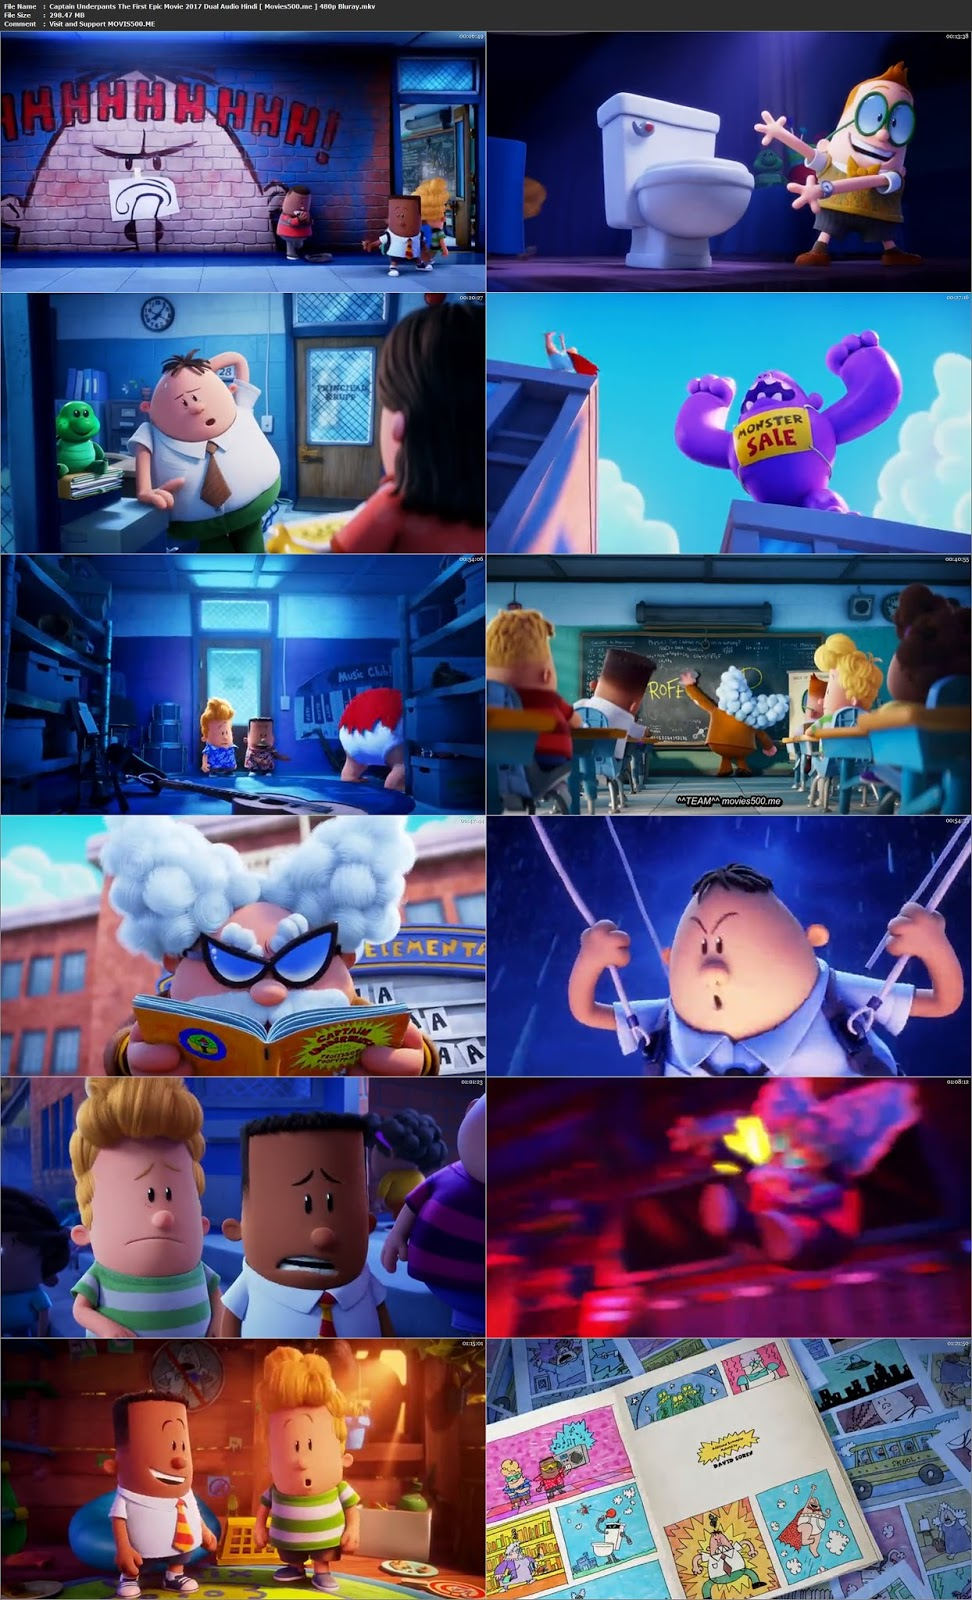 Captain Underpants The First Epic Movie 2017 Hindi Dubbed 297MB BRRip 480p at movies500.site